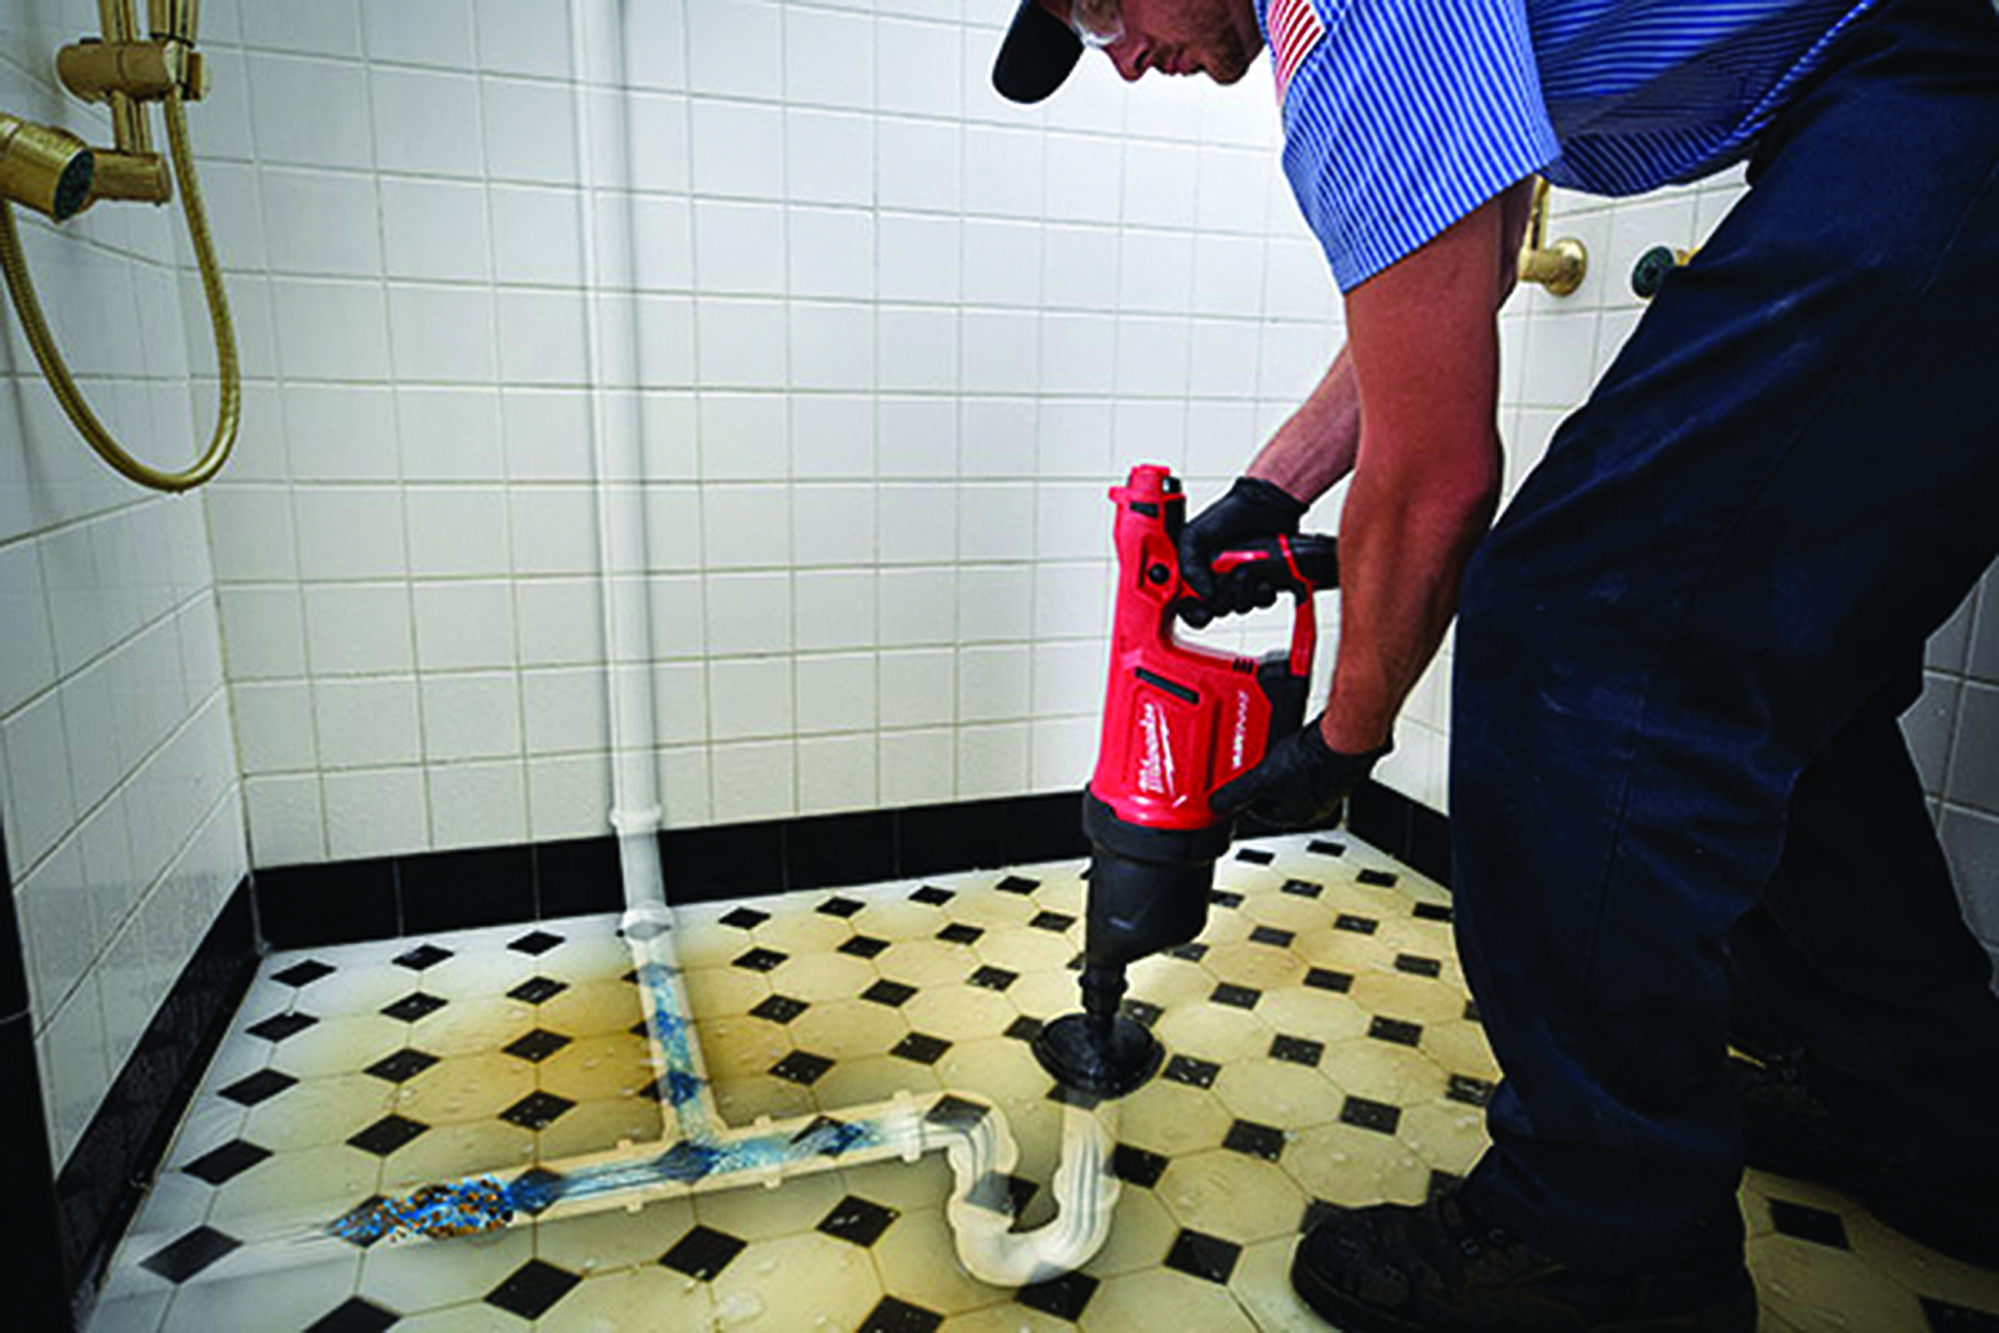 The Milwaukee Airsnake Jlc Online Power Tools Plumbing